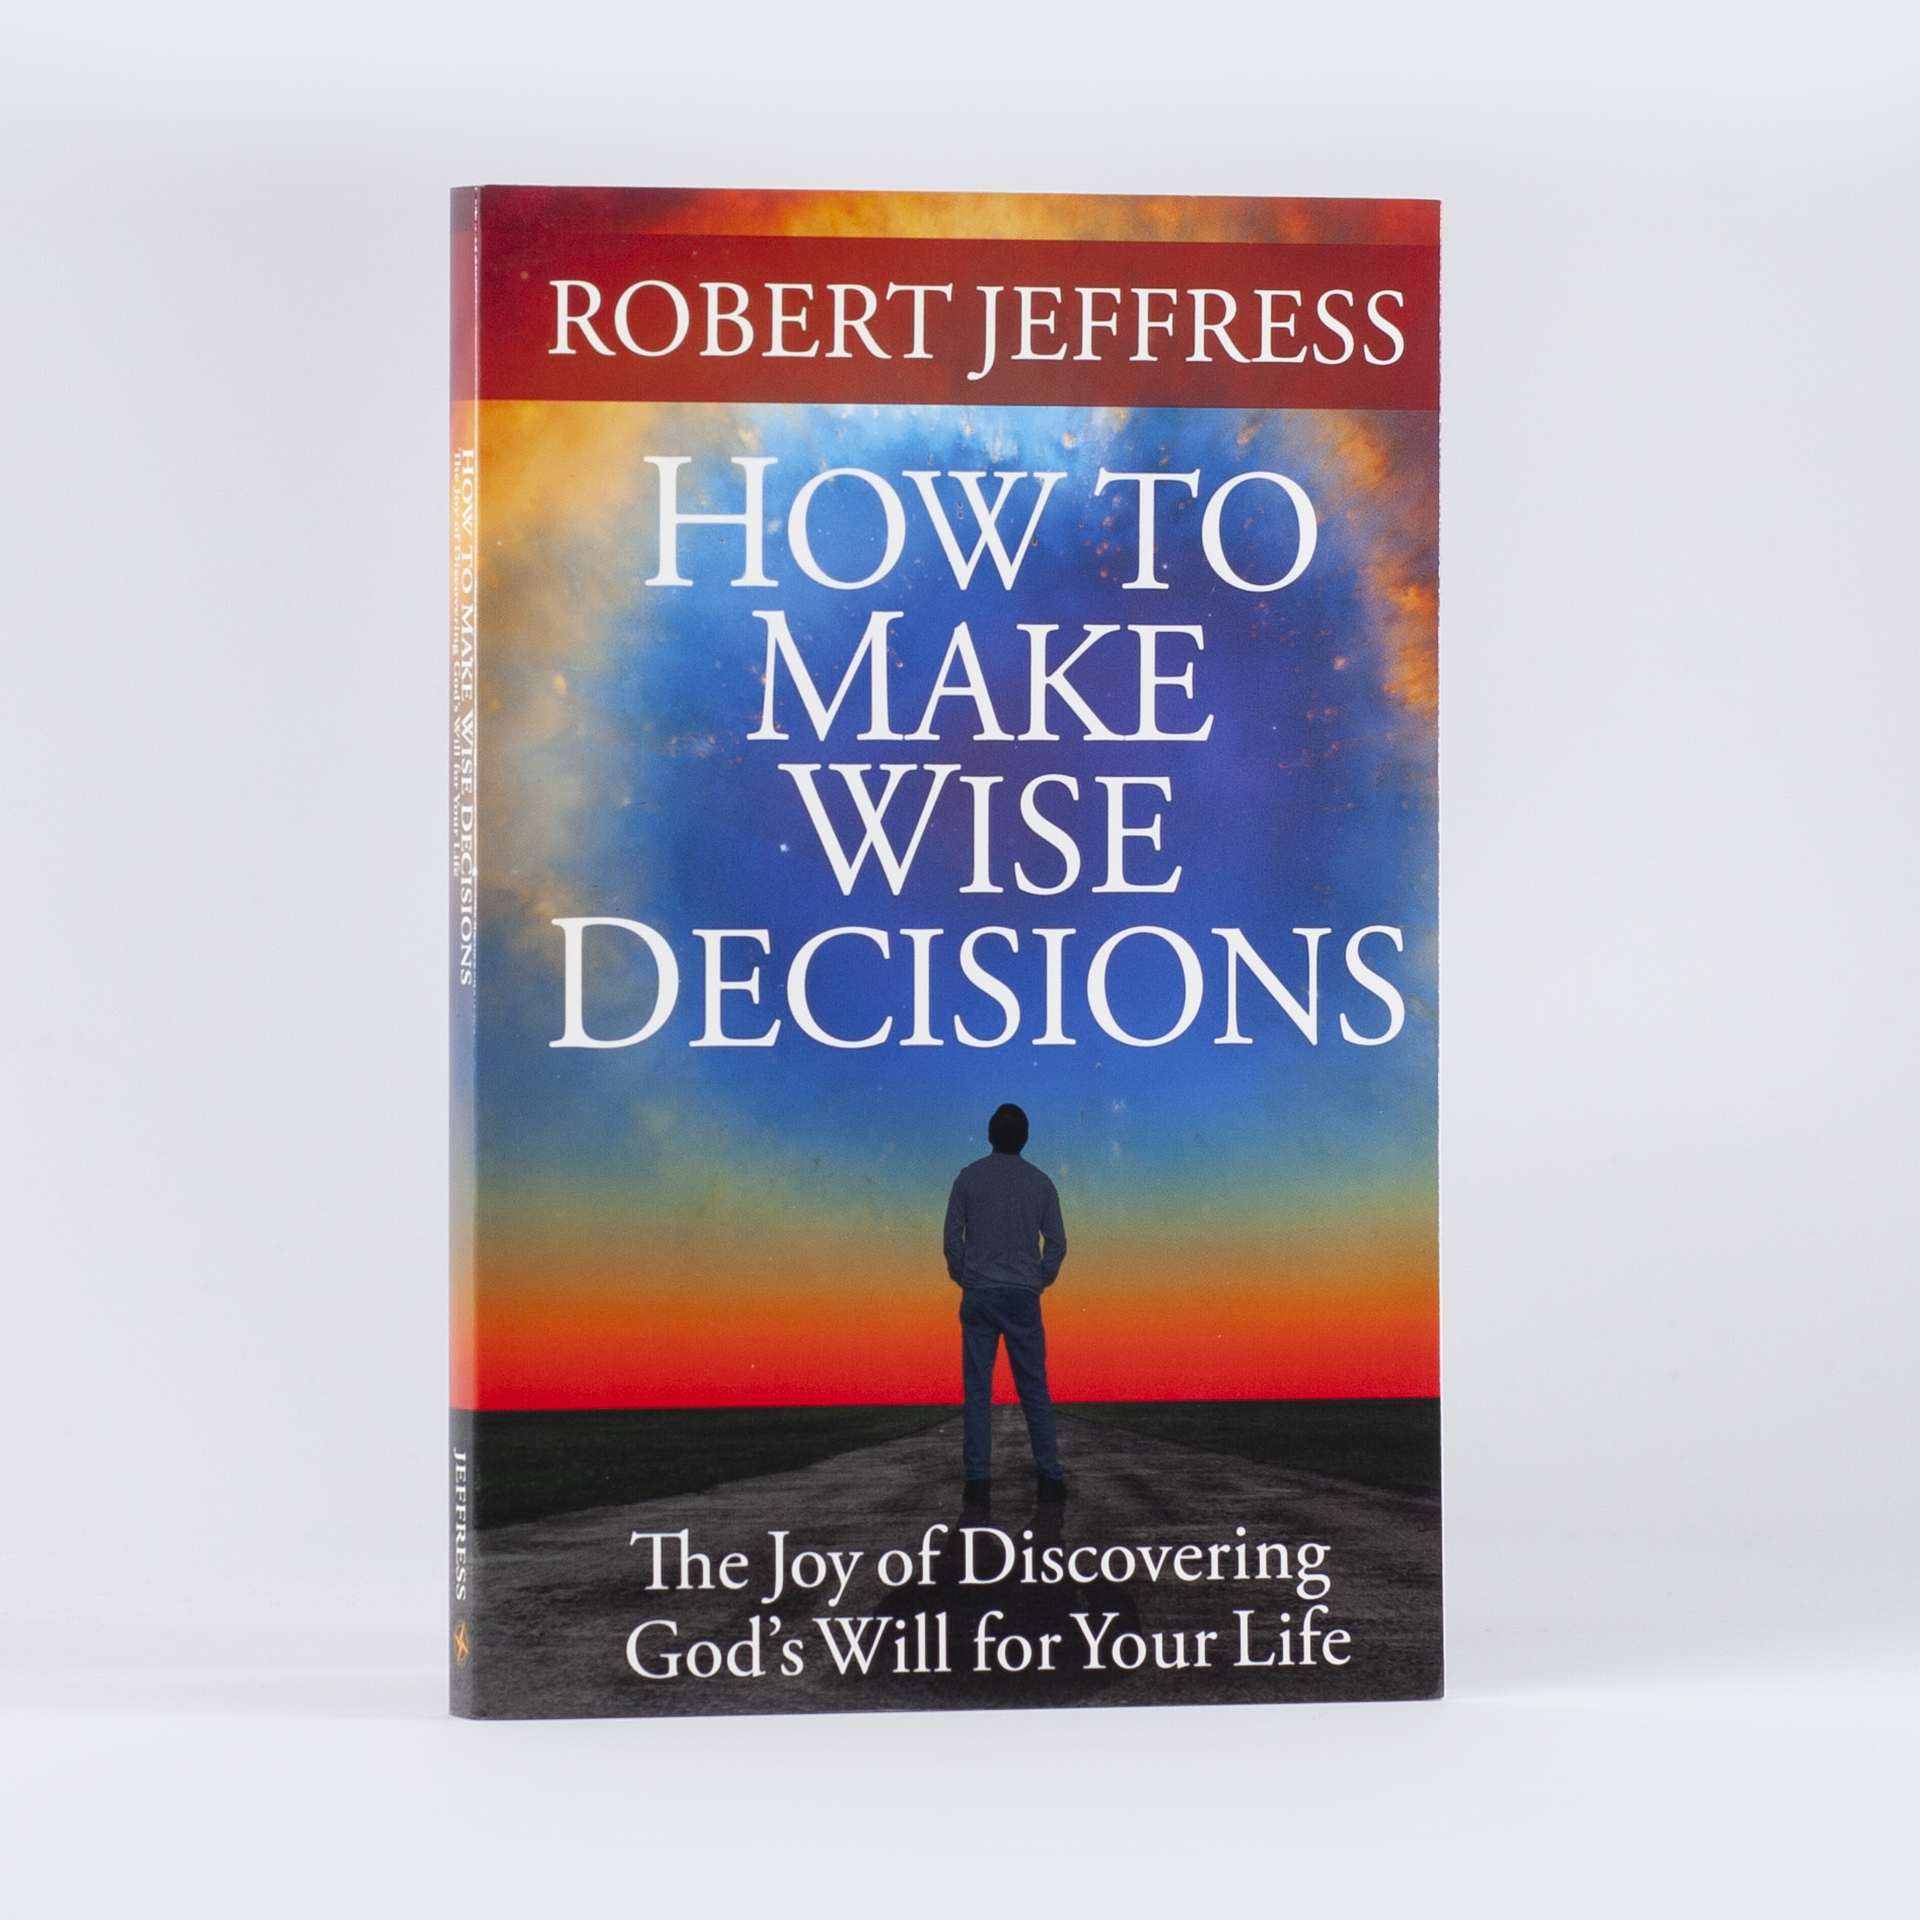 How To Make Wise Decisions soft-cover book